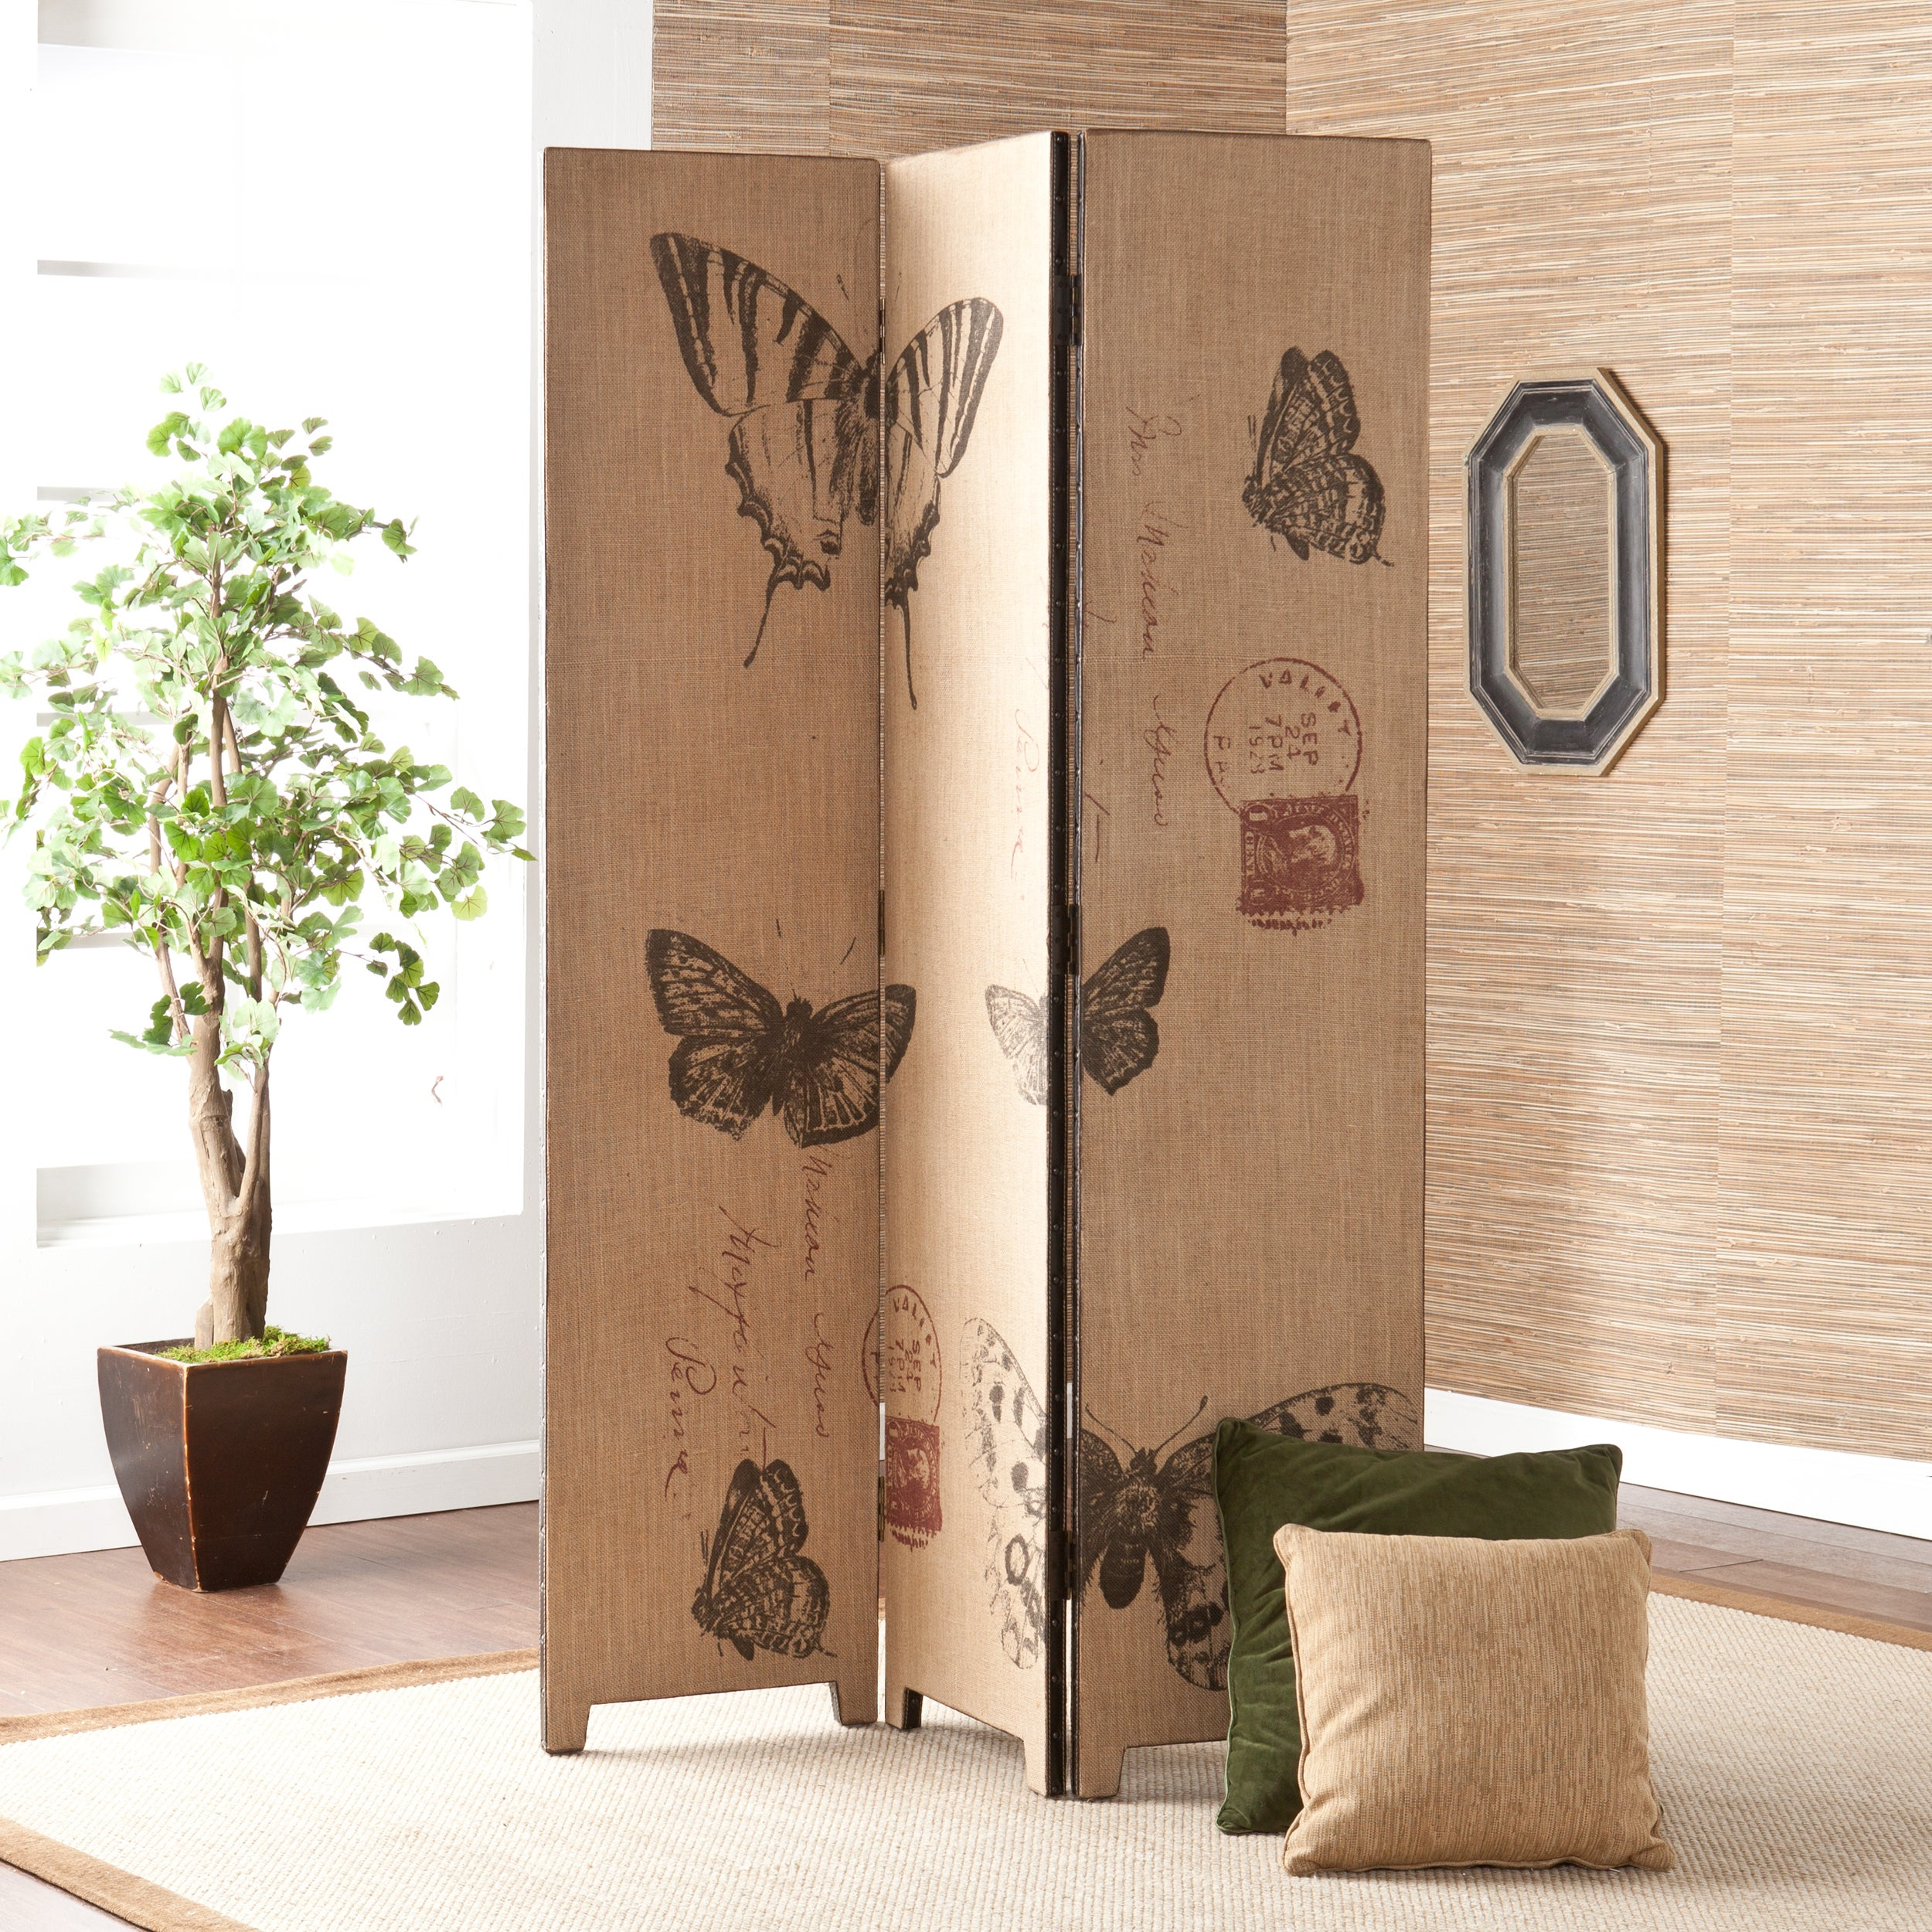 Room divider decorative screens overstock shopping the best prices online - Decorative partitions room divider ...